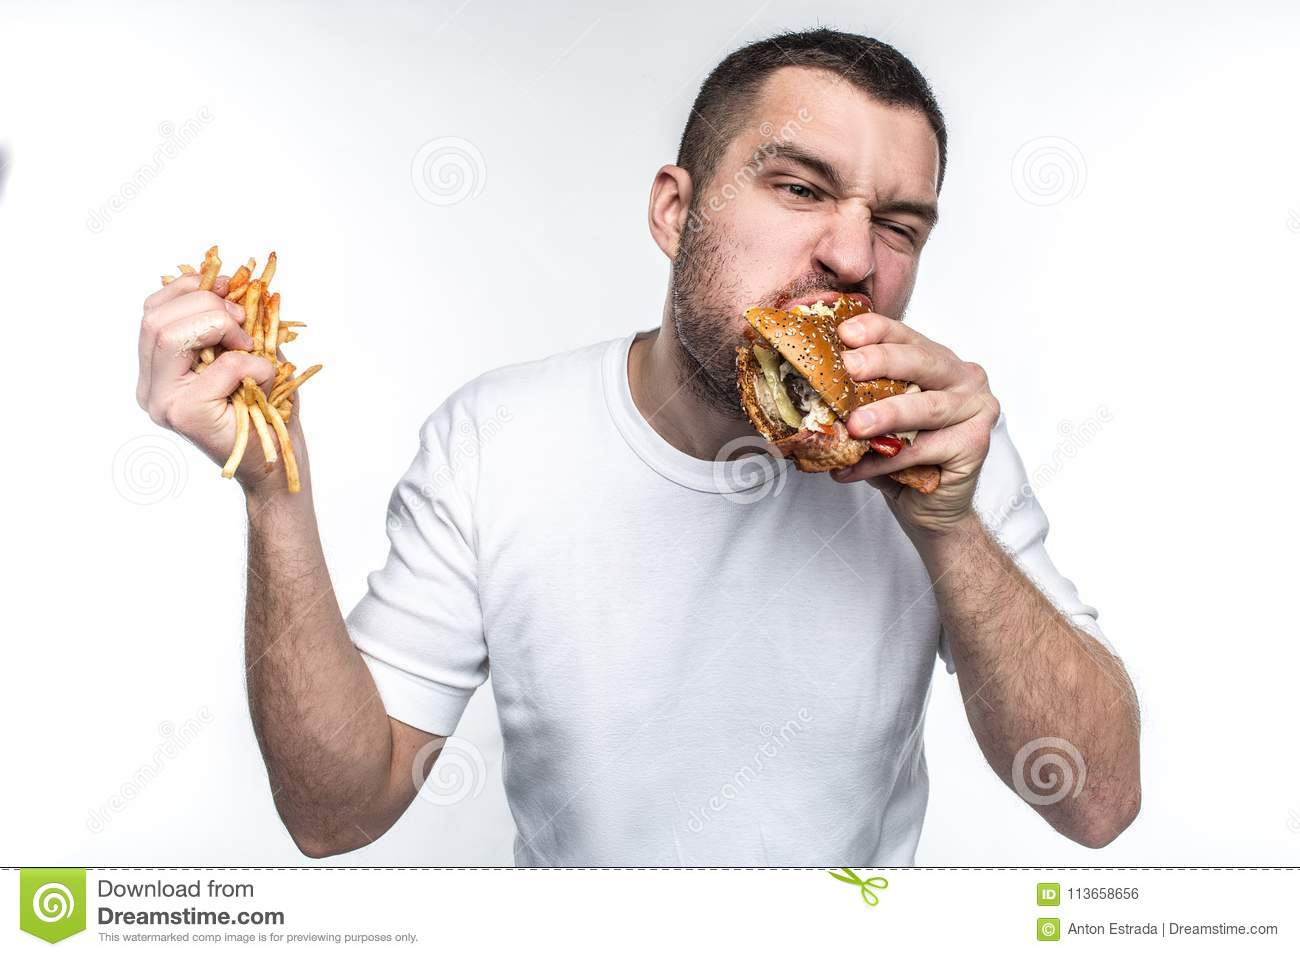 This guy is very delight of junk food. He is biting a big piece of burger and holding a full hand of french fries